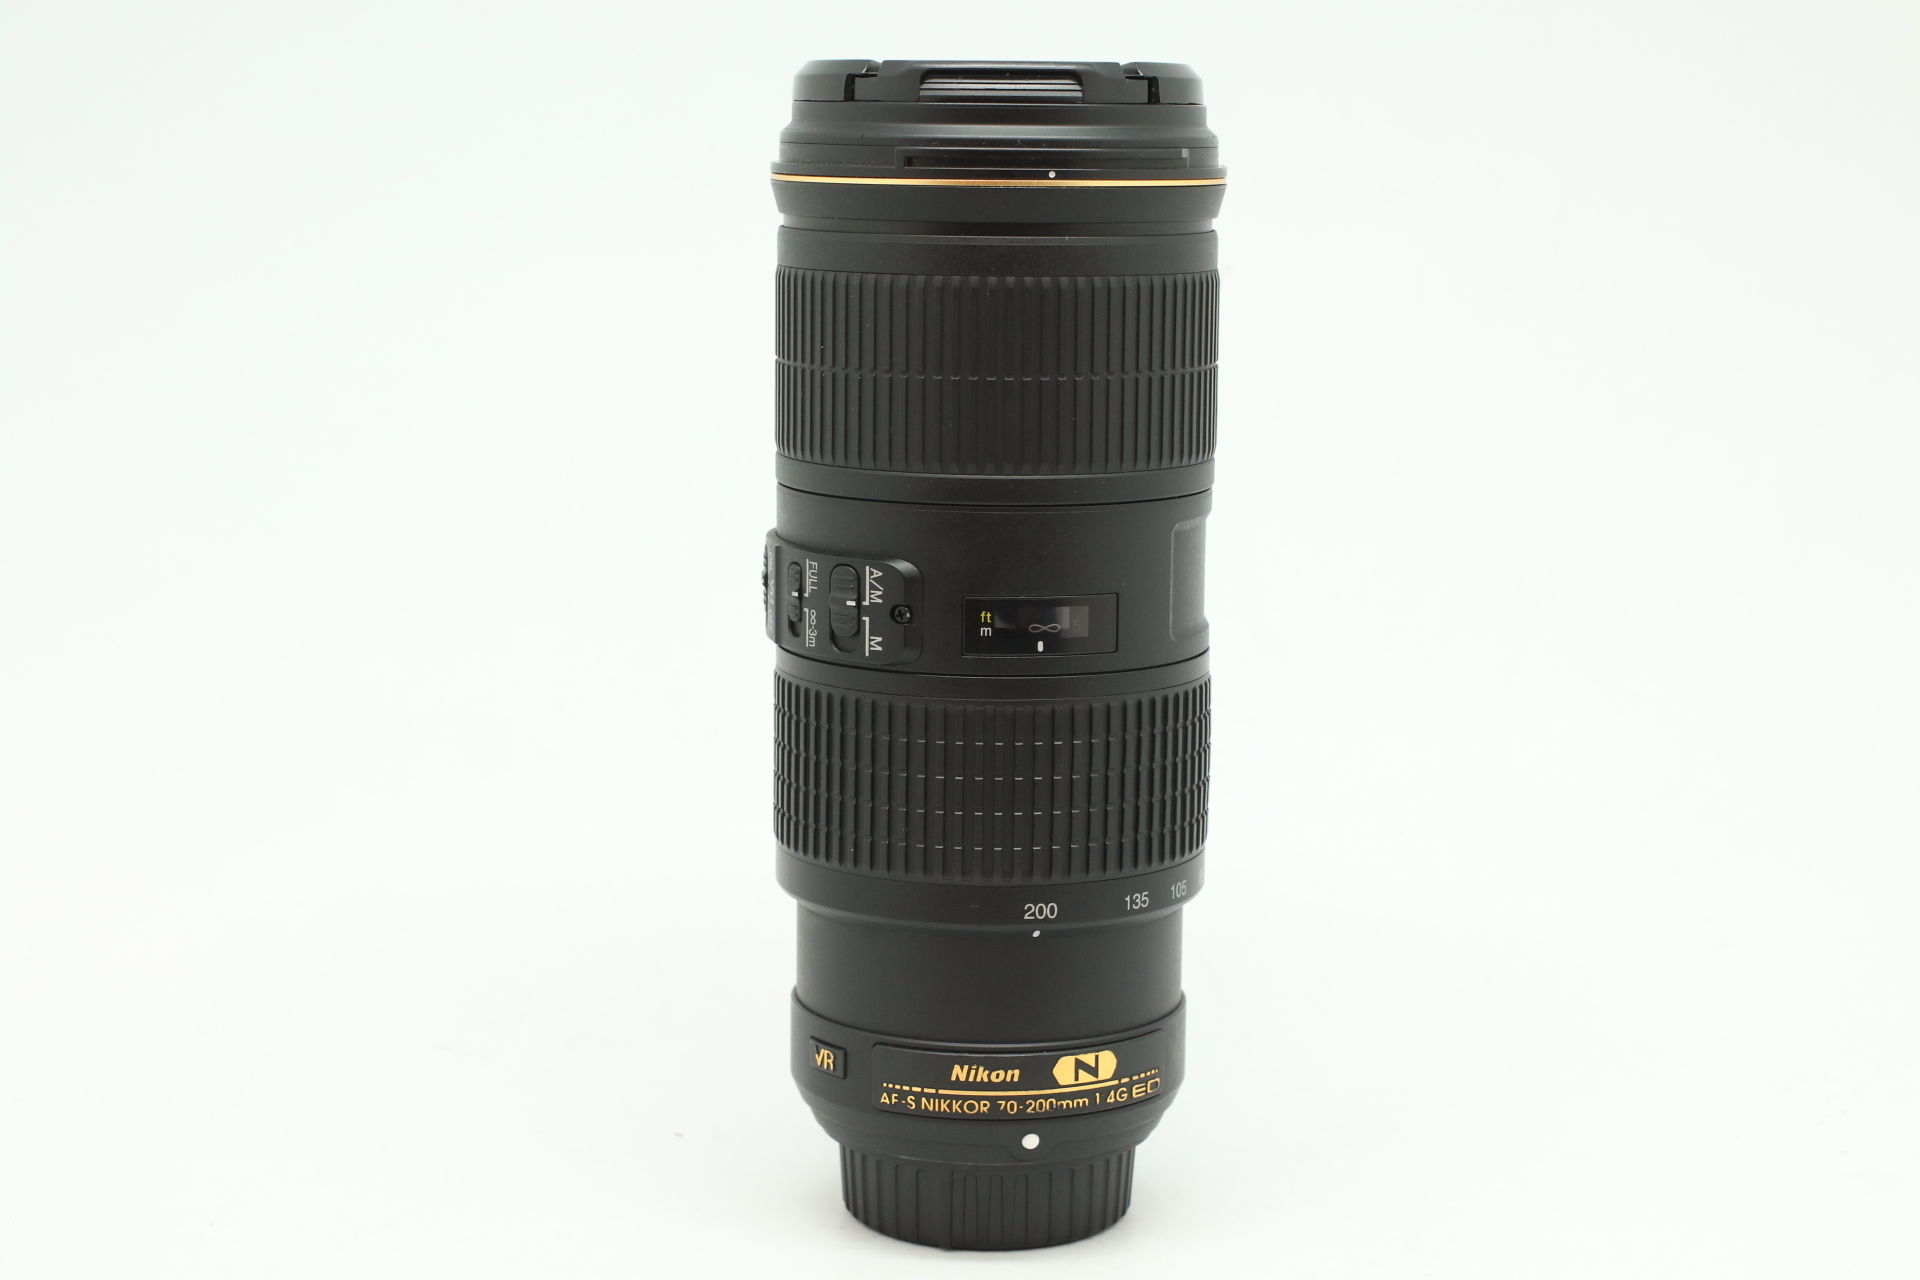 [USED-PUDU] NIKON 70-200MM F4G AFS VR N LENS 90%LIKE NEW CONDITION  SN:82003293